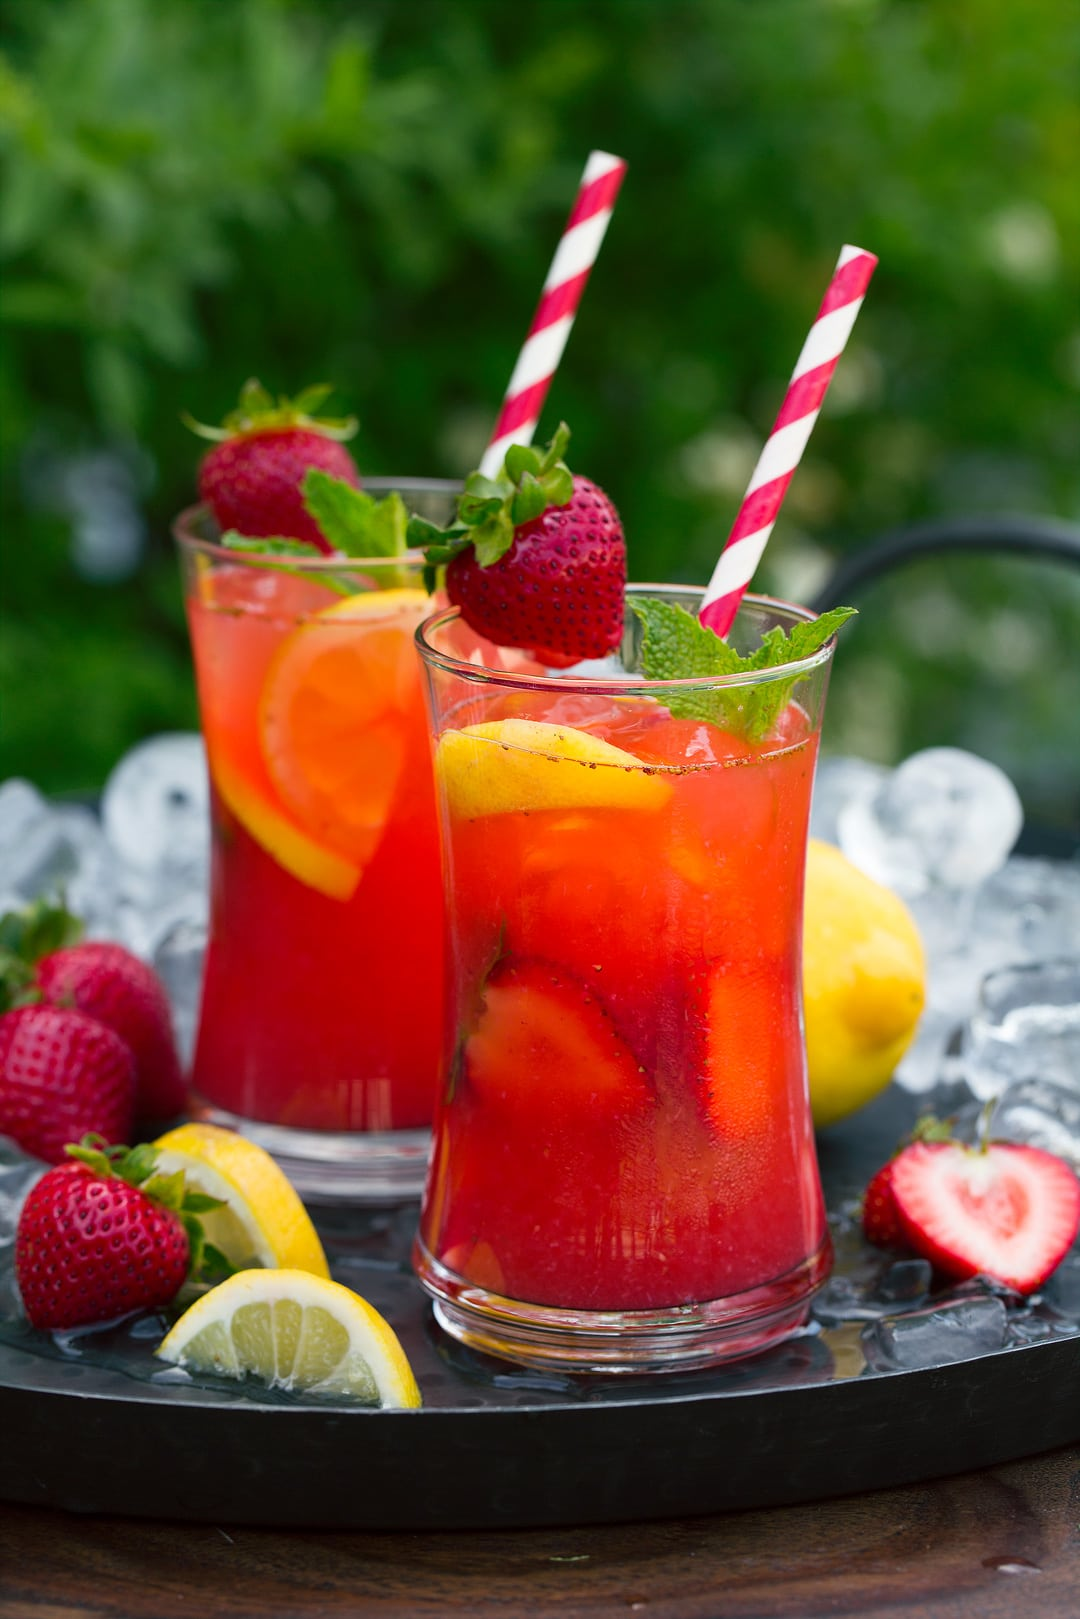 two glasses of Strawberry Lemonade on tray with lemon wedges and fresh strawberries